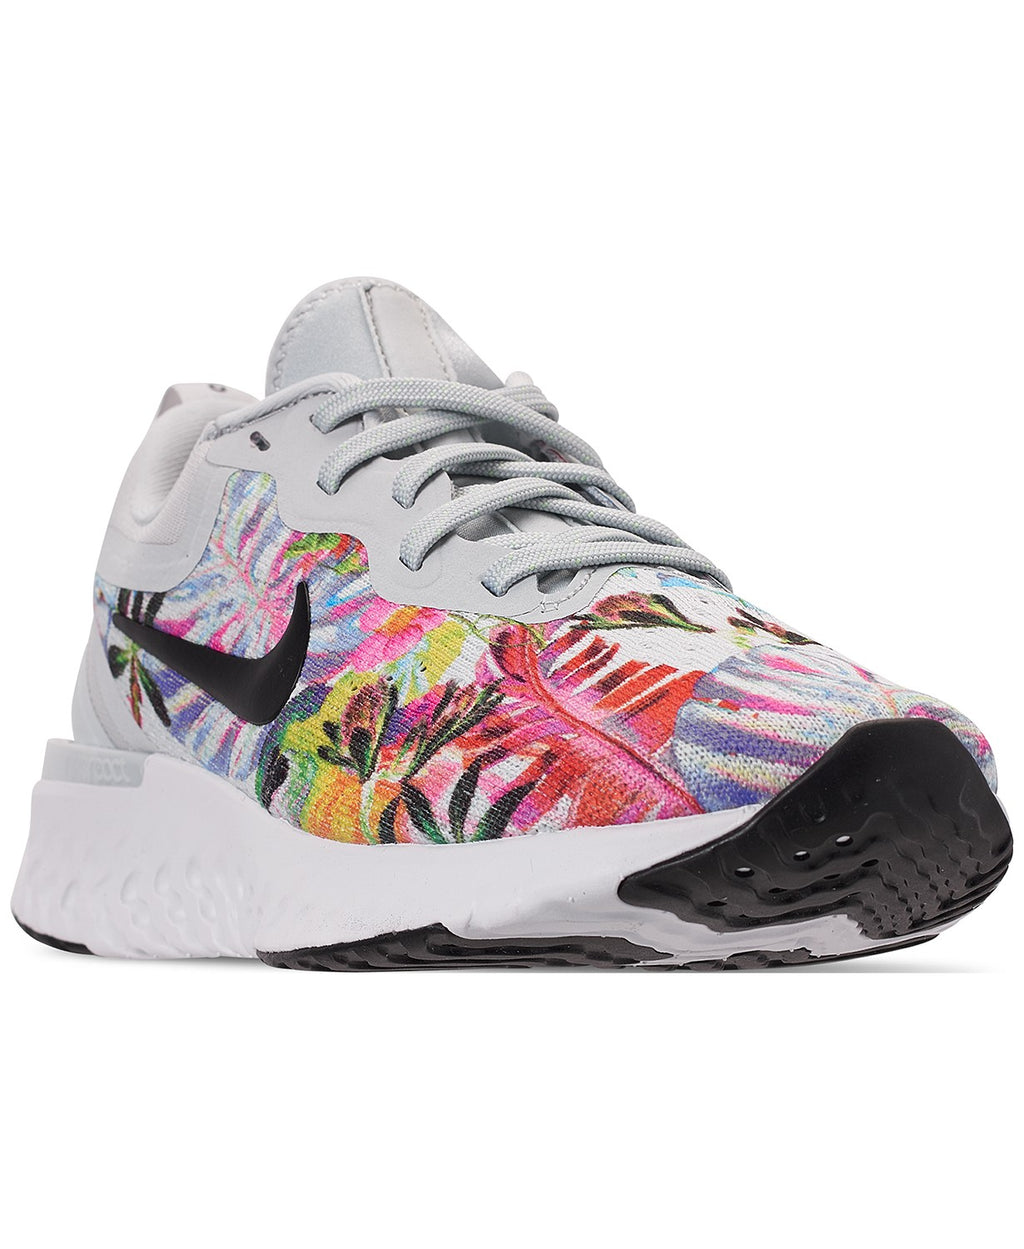 Nike Women's Odyssey React Graphic Running Sneakers